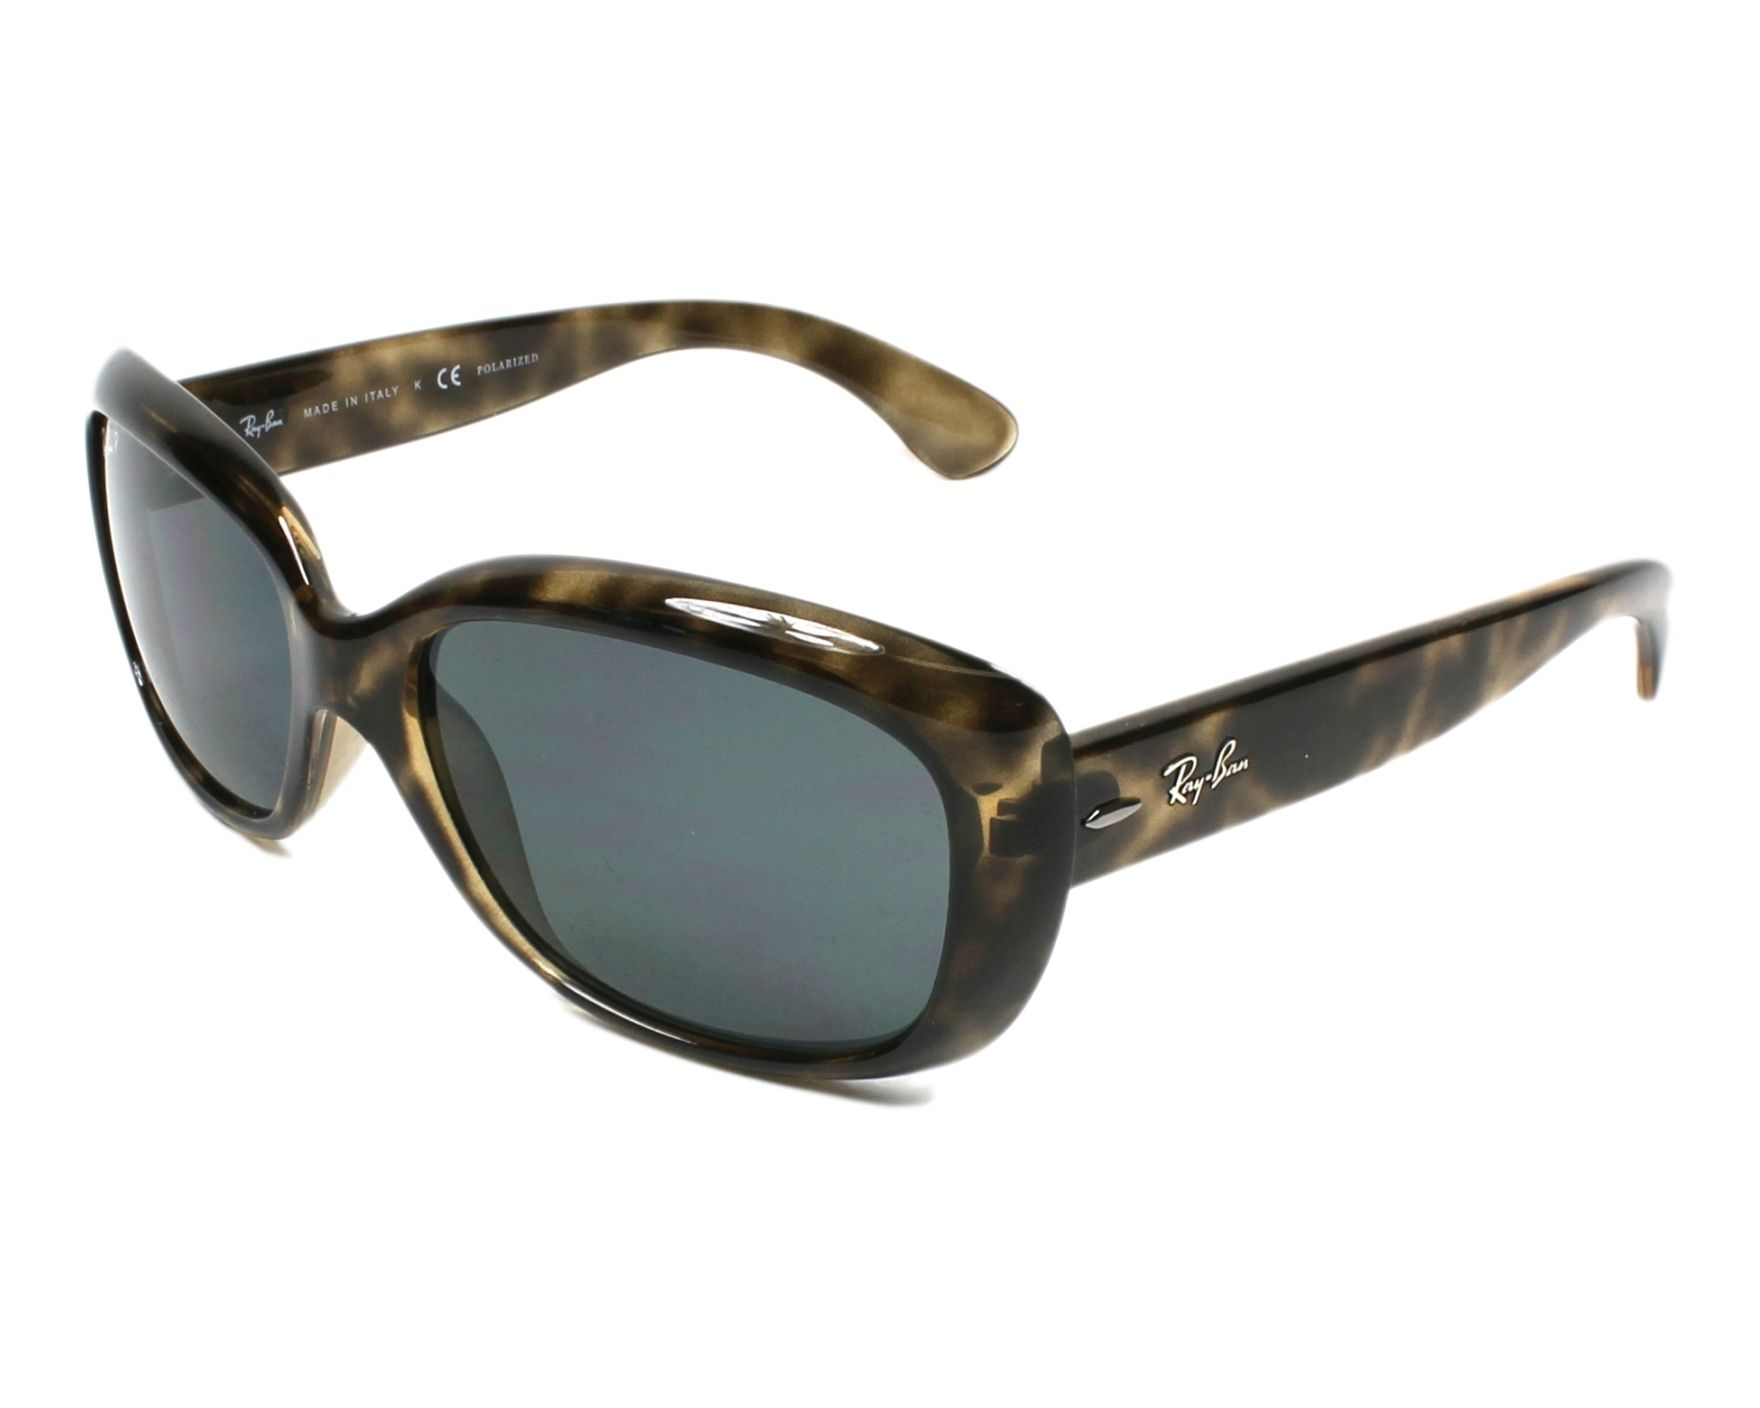 50c9f99694 Polarized. Sunglasses Ray-Ban RB-4101 731 81 58-19 Havana profile view